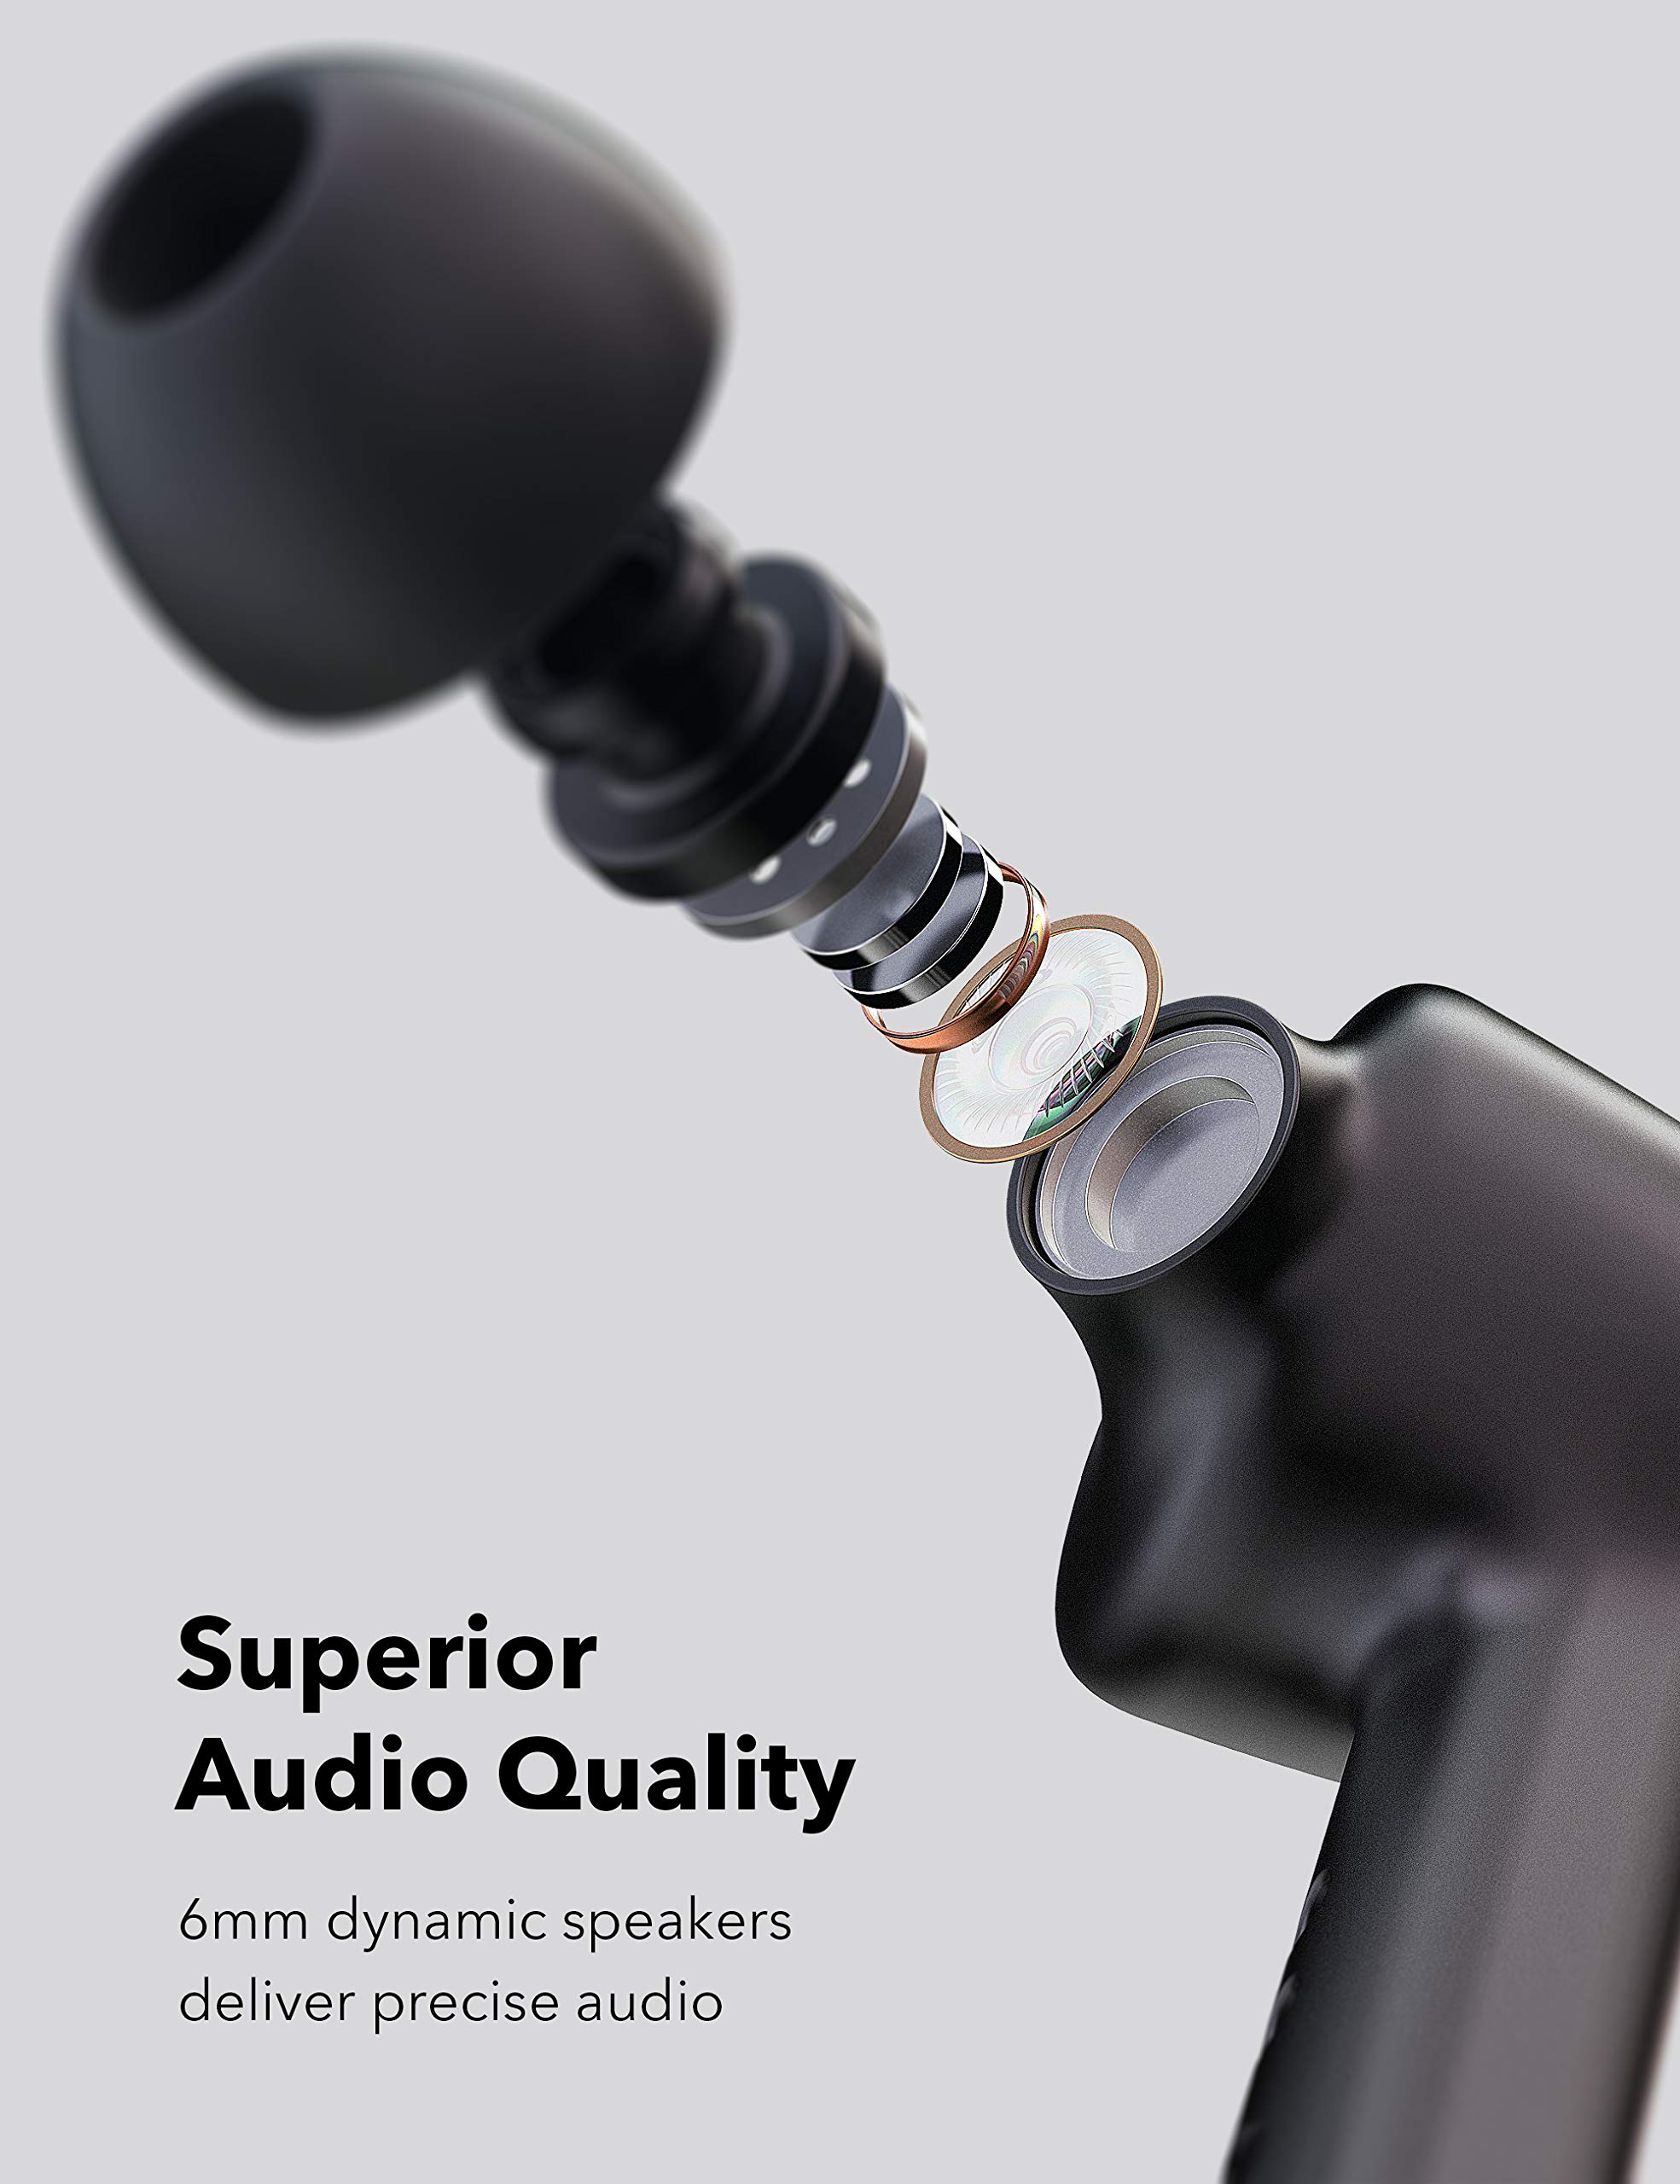 Wireless Earbuds, TaoTronics Bluetooth 5.0 Headphones SoundLiberty 53 in-Ear Earphones IPX7 Waterproof Smart Touch Control Bluetooth Earbuds Single/Twin Mode with Built-in Mic 40 H Playtime TT-BH053 by TaoTronics (Image #5)